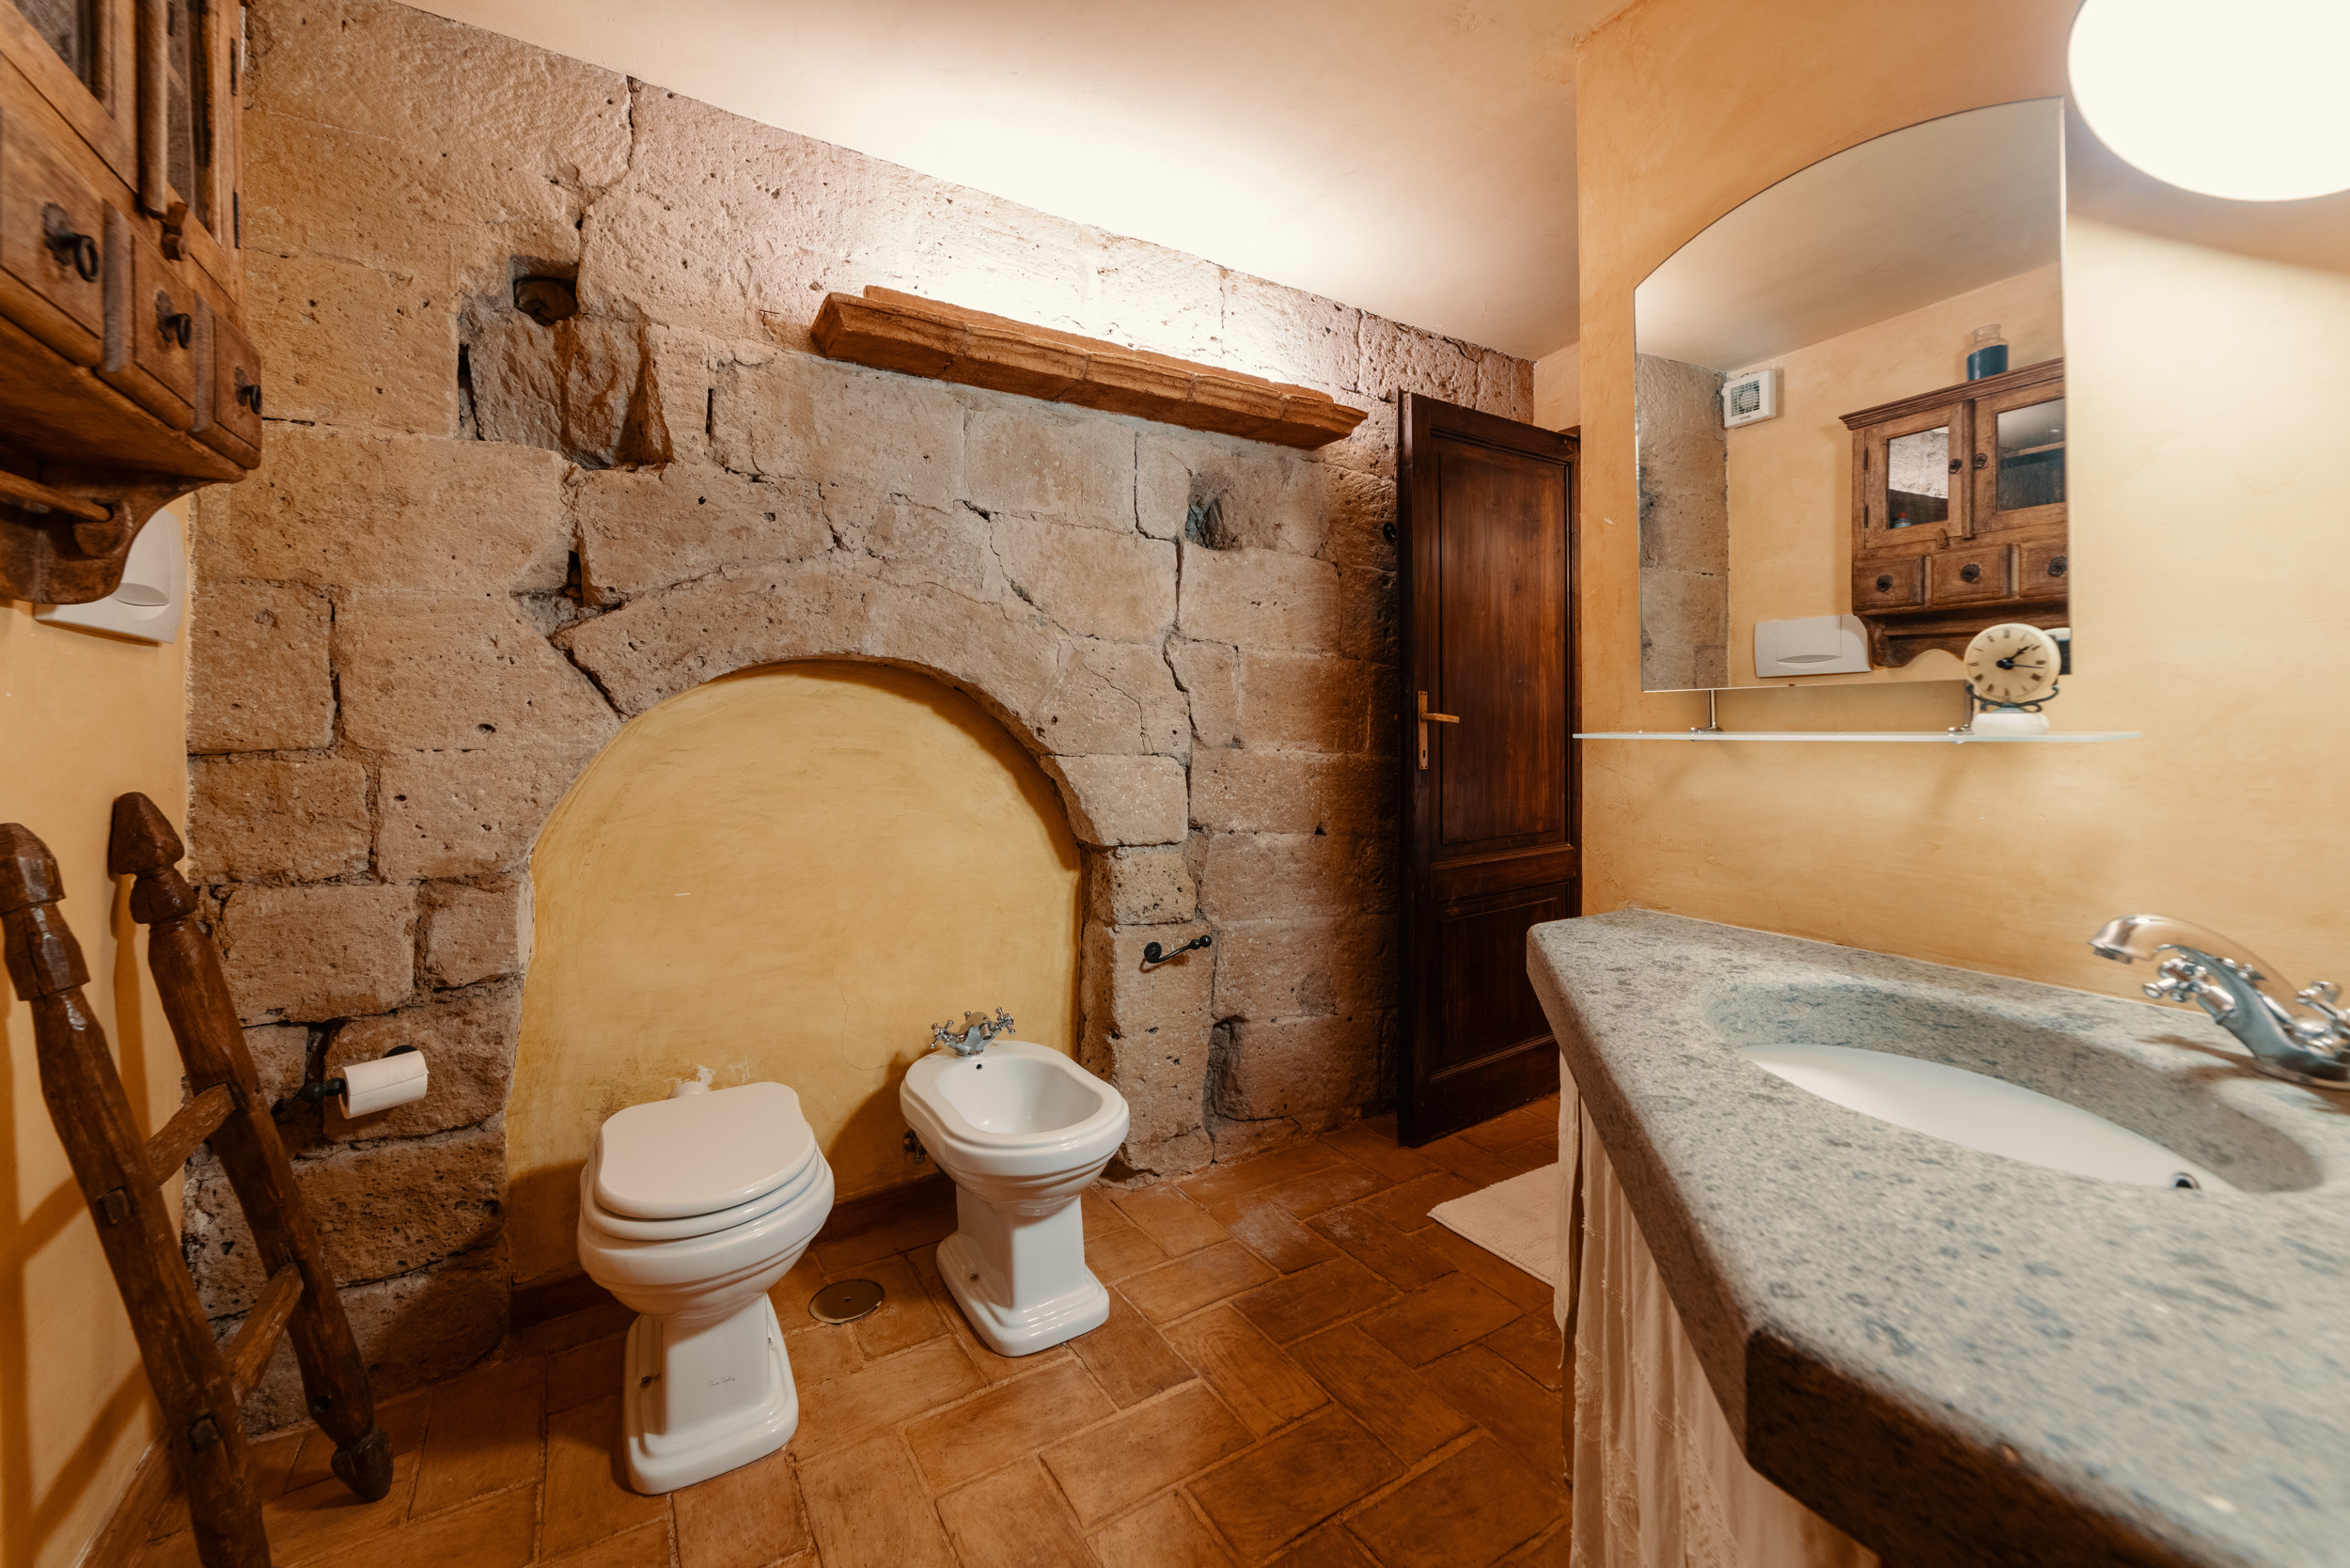 Rustic bathroom with toilet, bidet and shower.